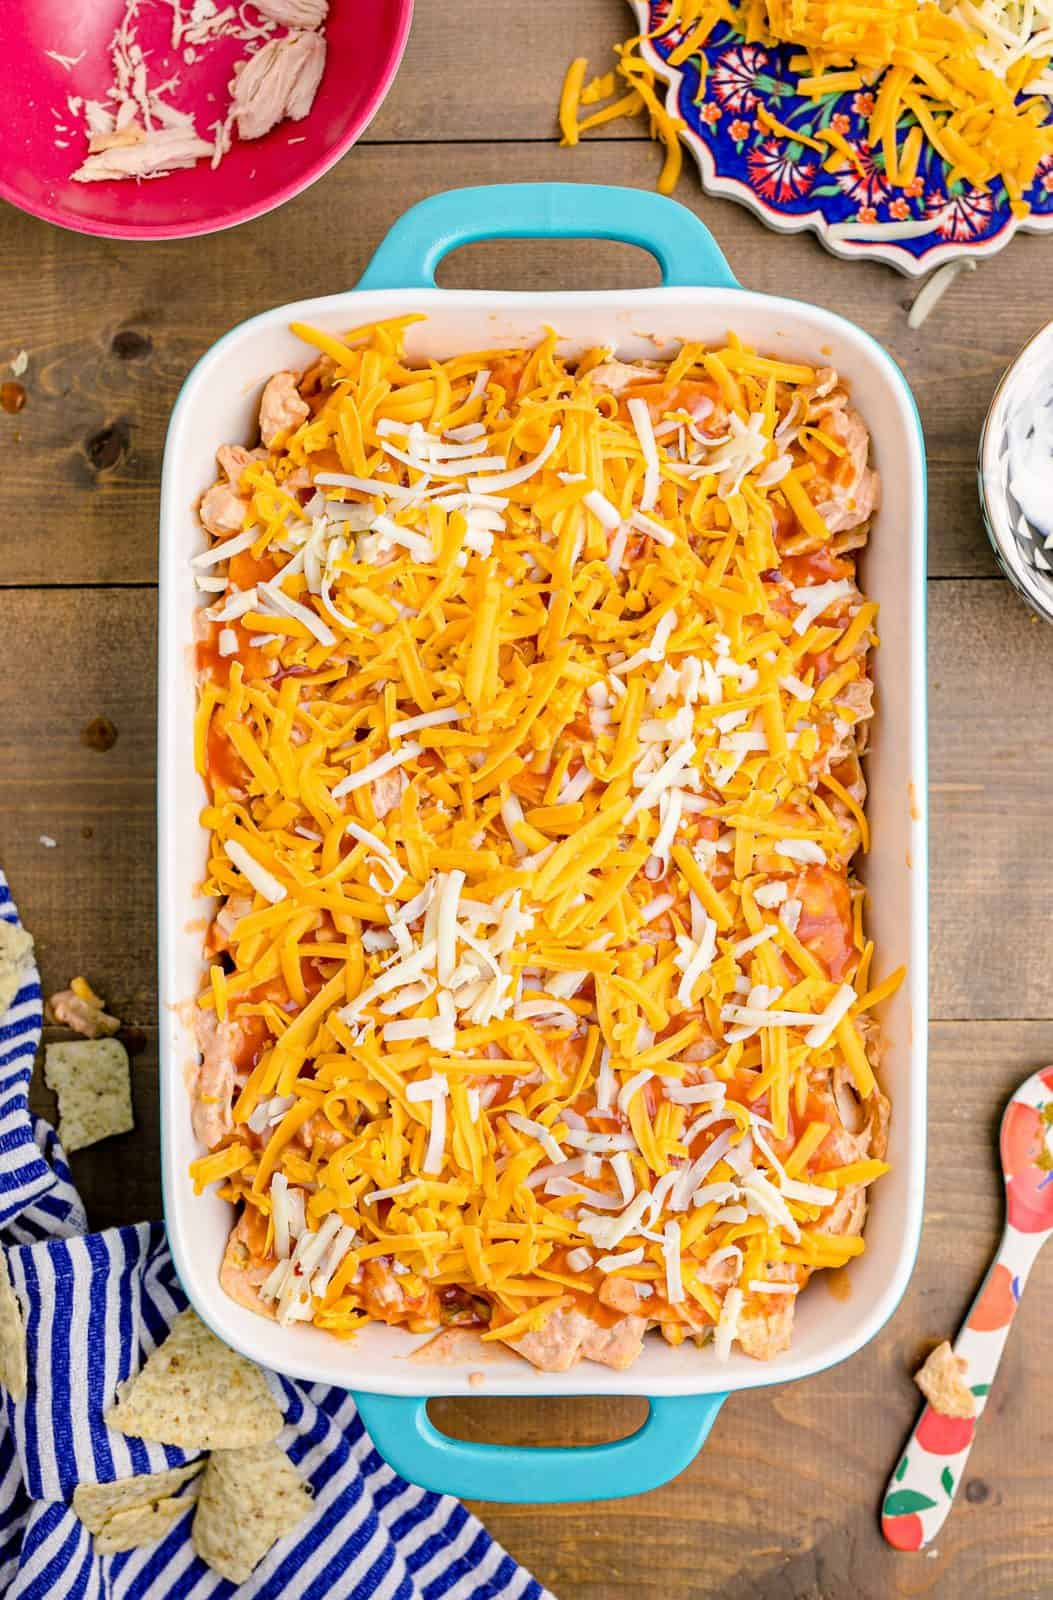 Enchilada mixture topped with shredded cheese.